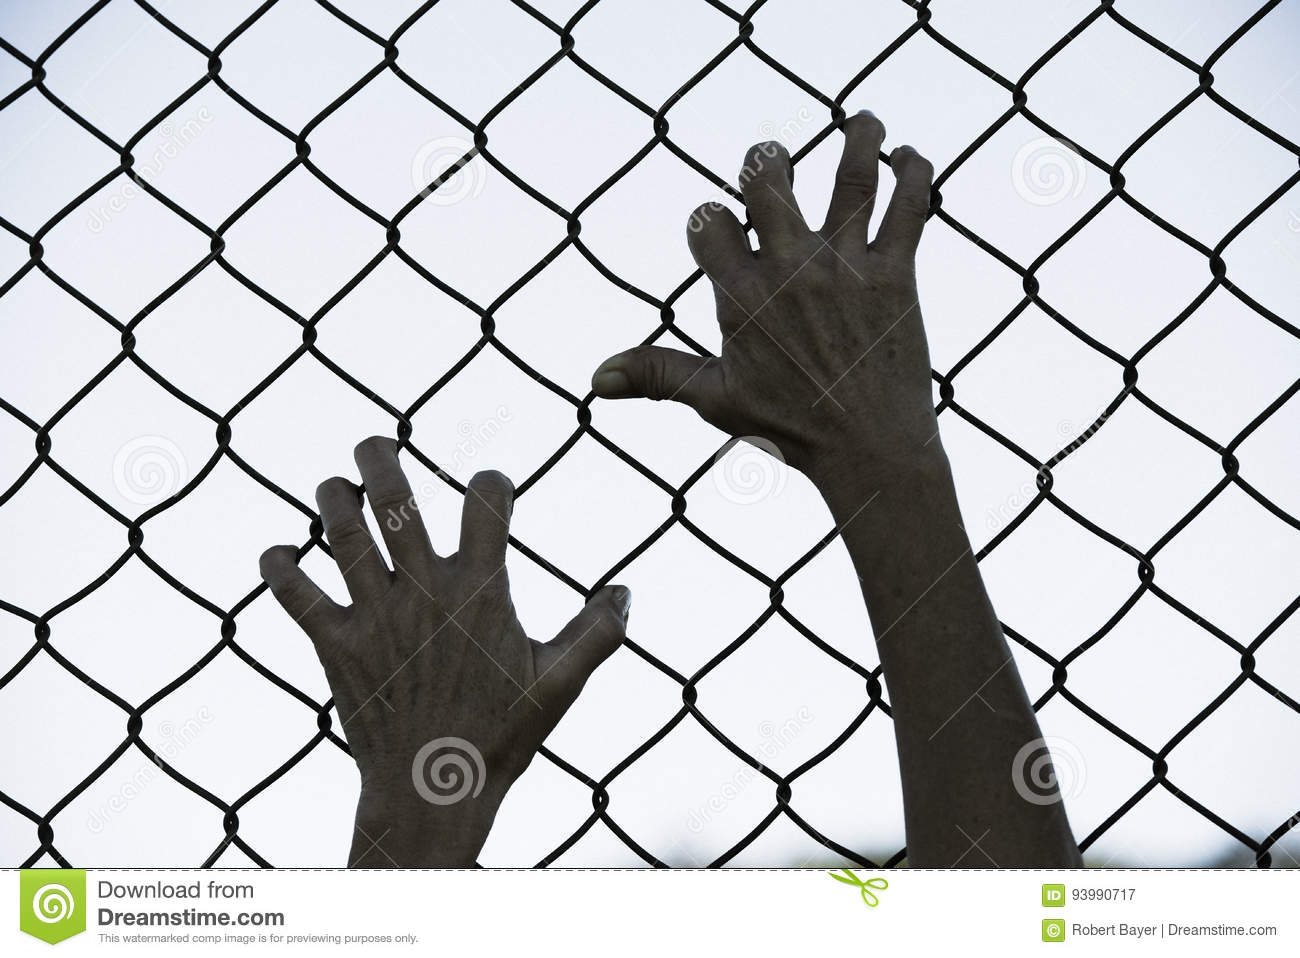 Hands Gripped Onto Prison Mesh Wire Fence Stock Image - Image of ...